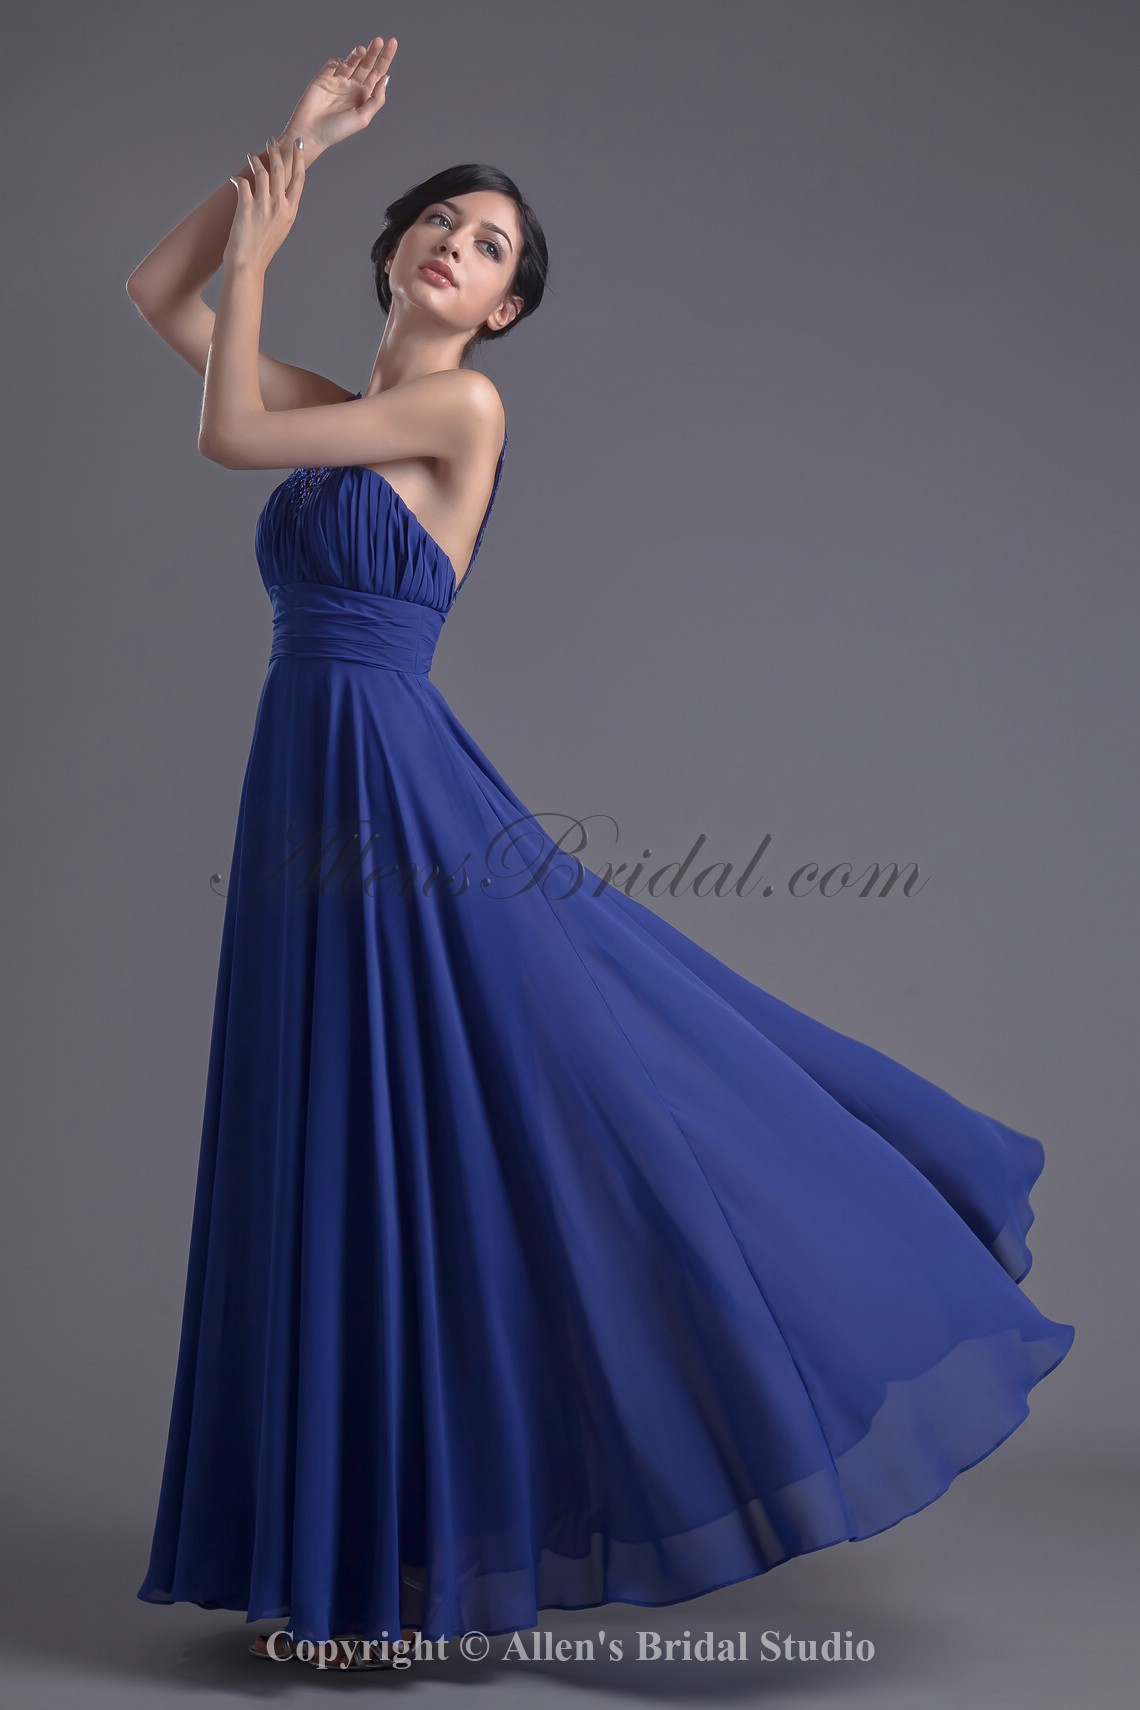 /21-163/chiffon-jewel-neckline-a-line-floor-length-beading-prom-dress.jpg